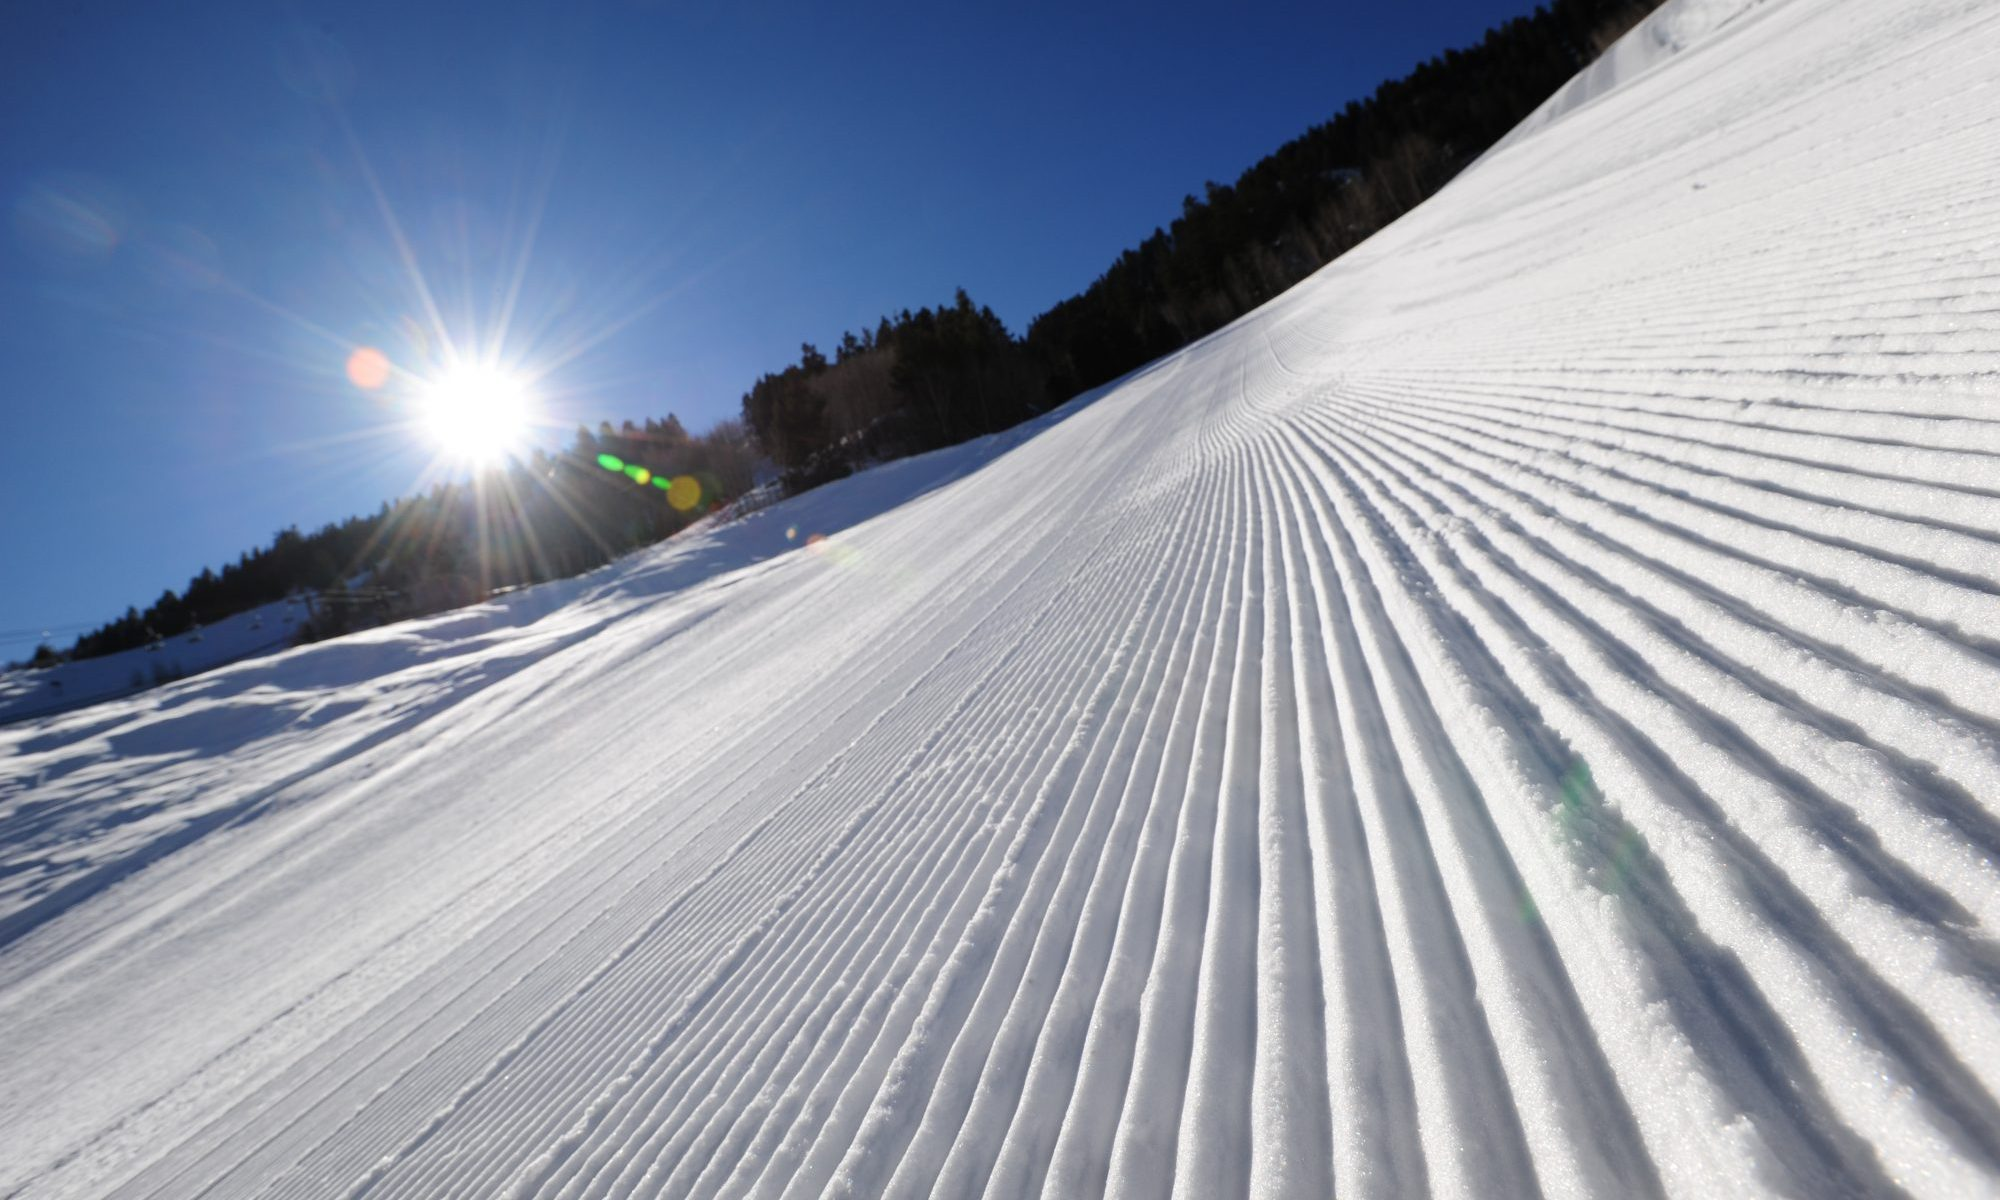 Aspen Snowmass photo. Aspen Snowmass to Celebrate 168 days of Skiing and Riding this Season.